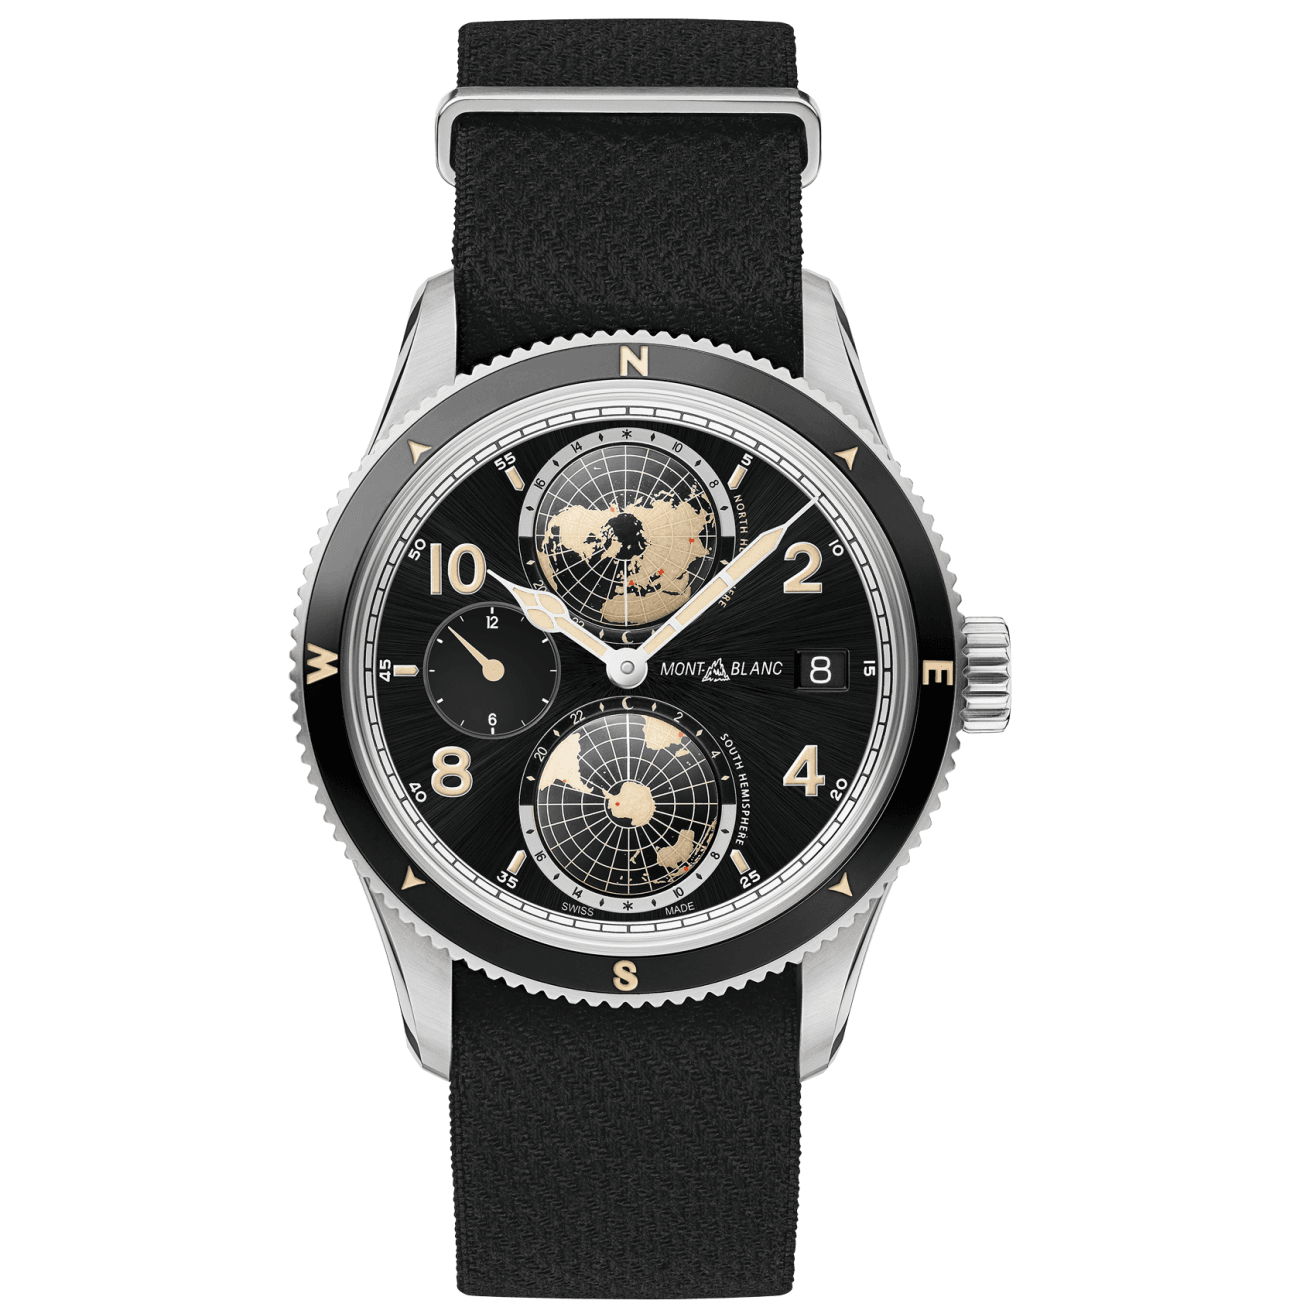 Montblanc Watches - Montblanc 117837 | Manfredi Jewels